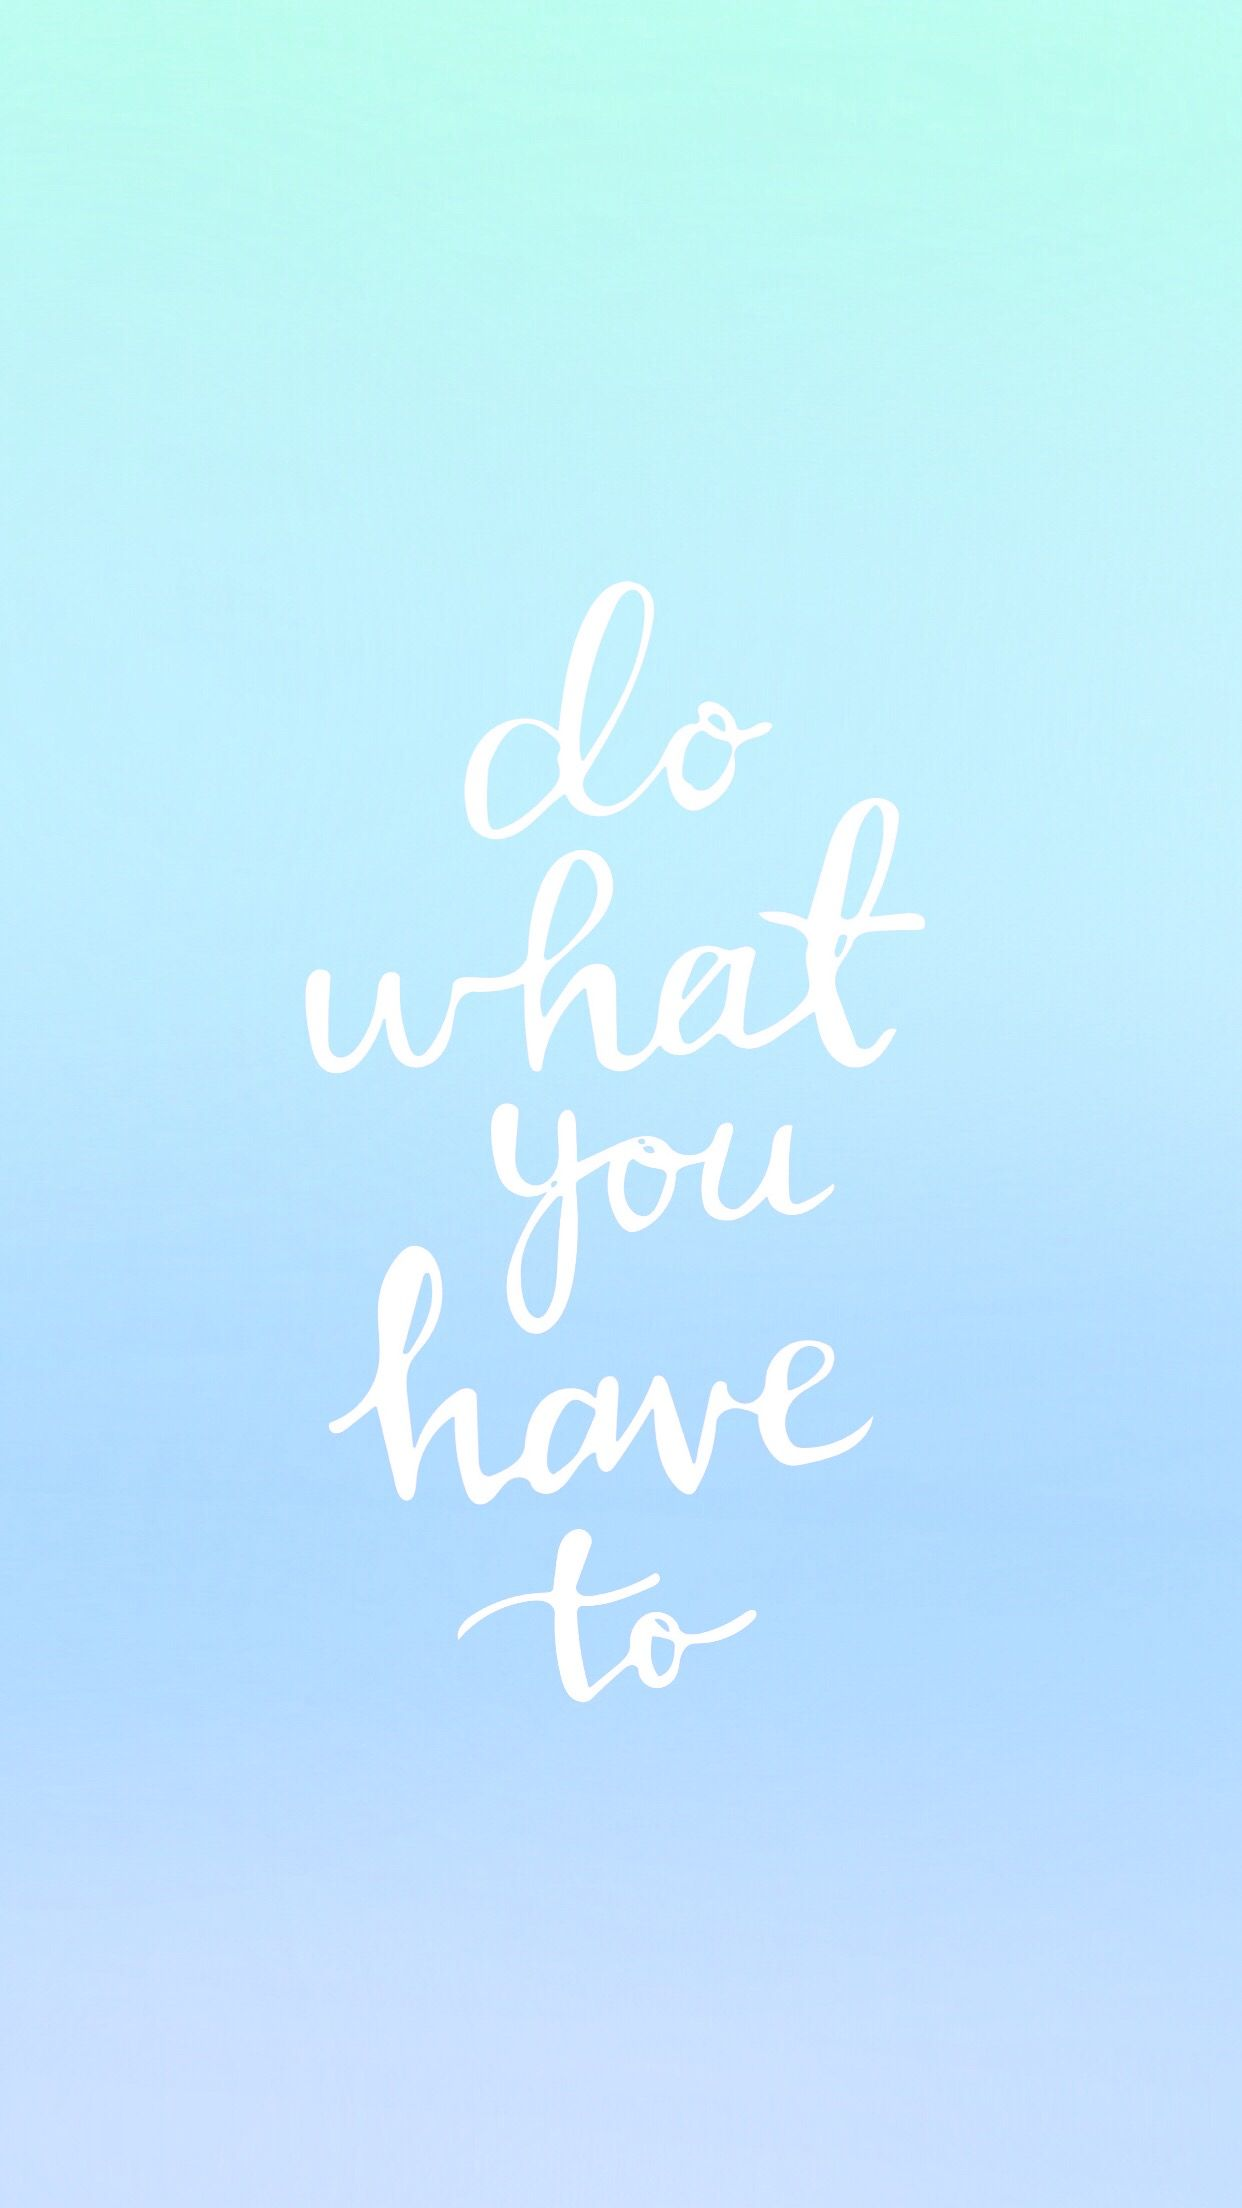 Do What You Have To Ombre Blue Wallpaper Blue Wallpaper Phone Blue Wallpapers Phone Wallpaper